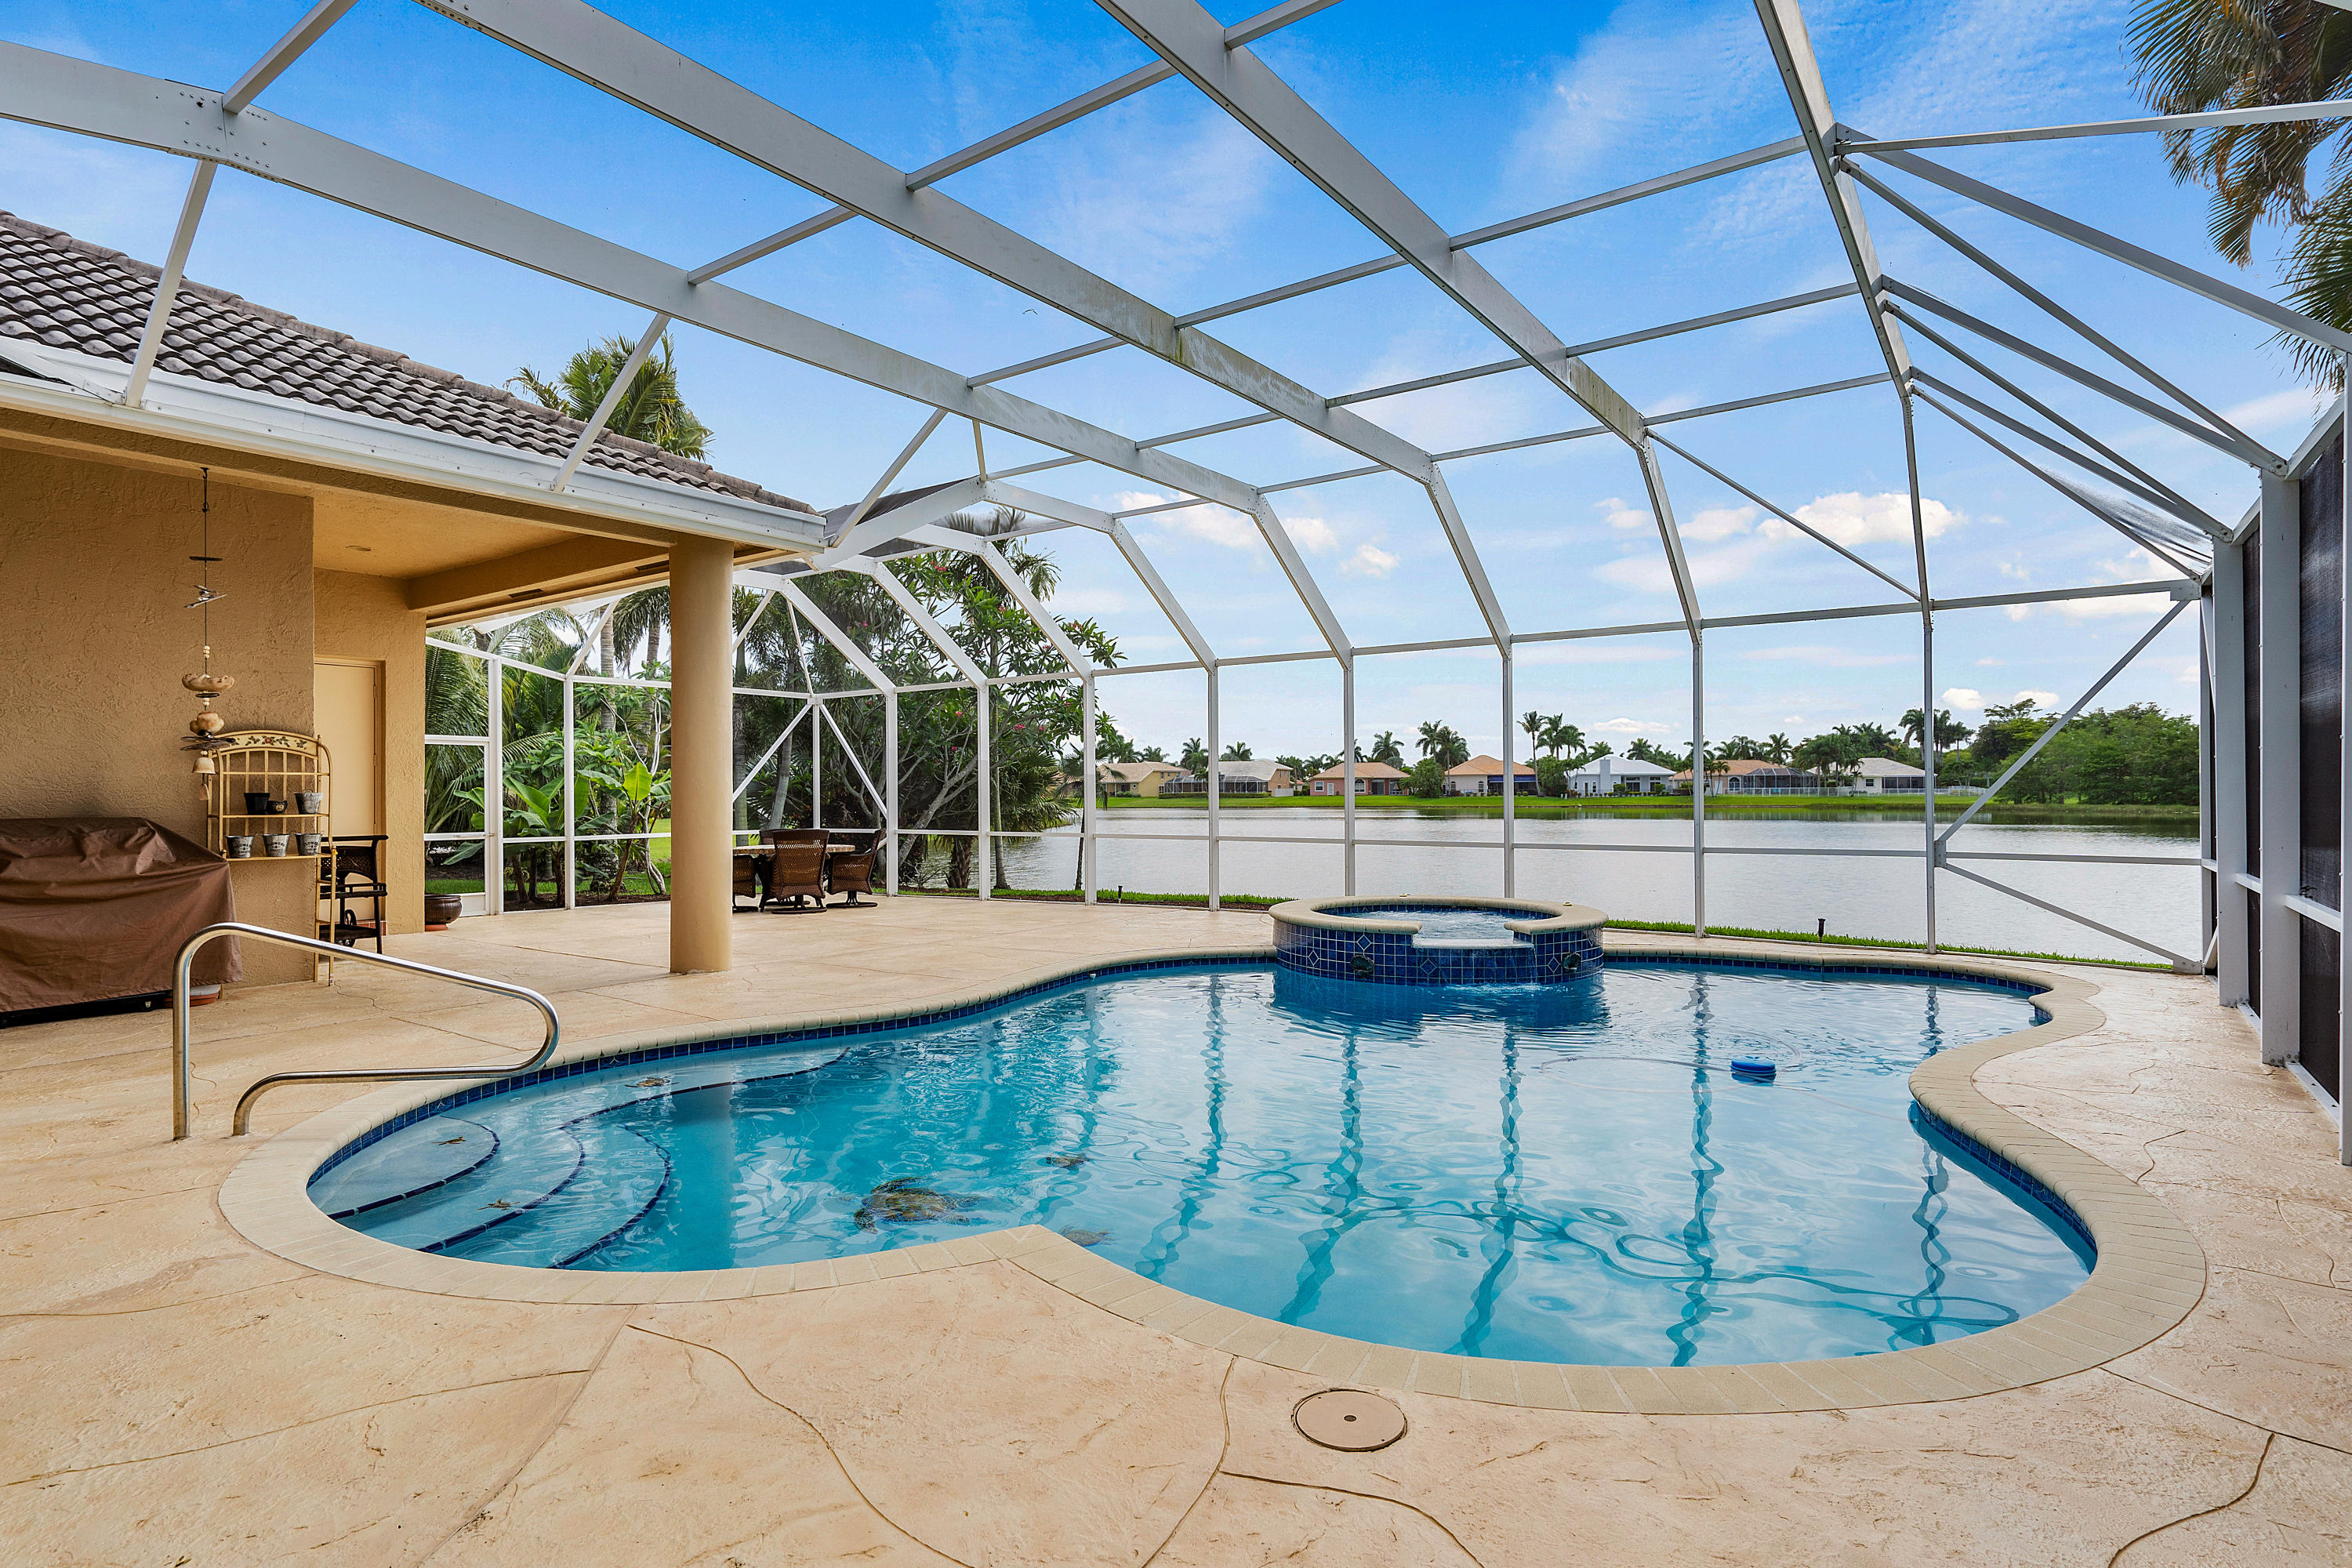 BOCA FALLS BOCA RATON REAL ESTATE